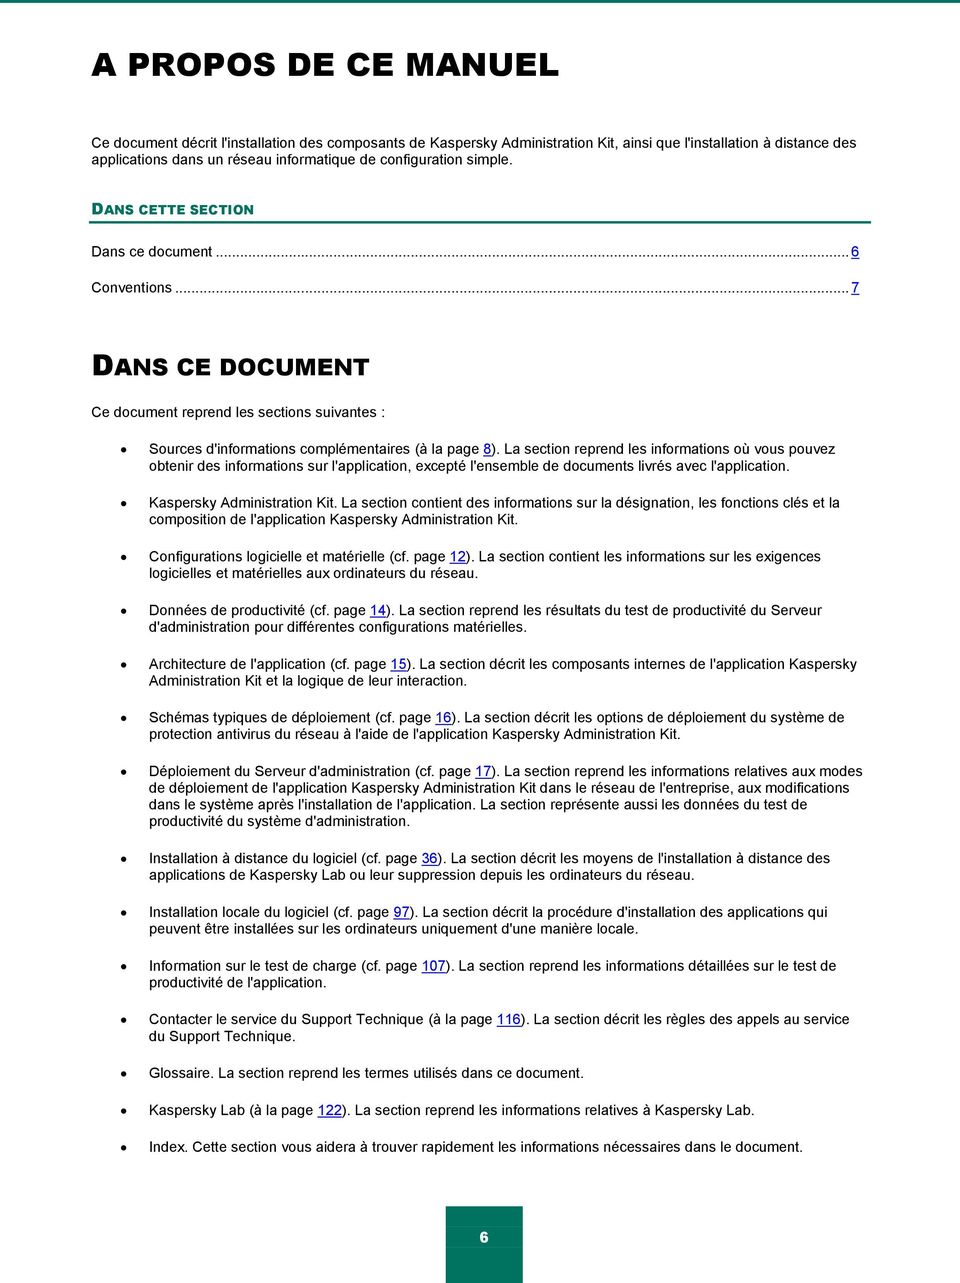 La section reprend les informations où vous pouvez obtenir des informations sur l'application, excepté l'ensemble de documents livrés avec l'application. Kaspersky Administration Kit.